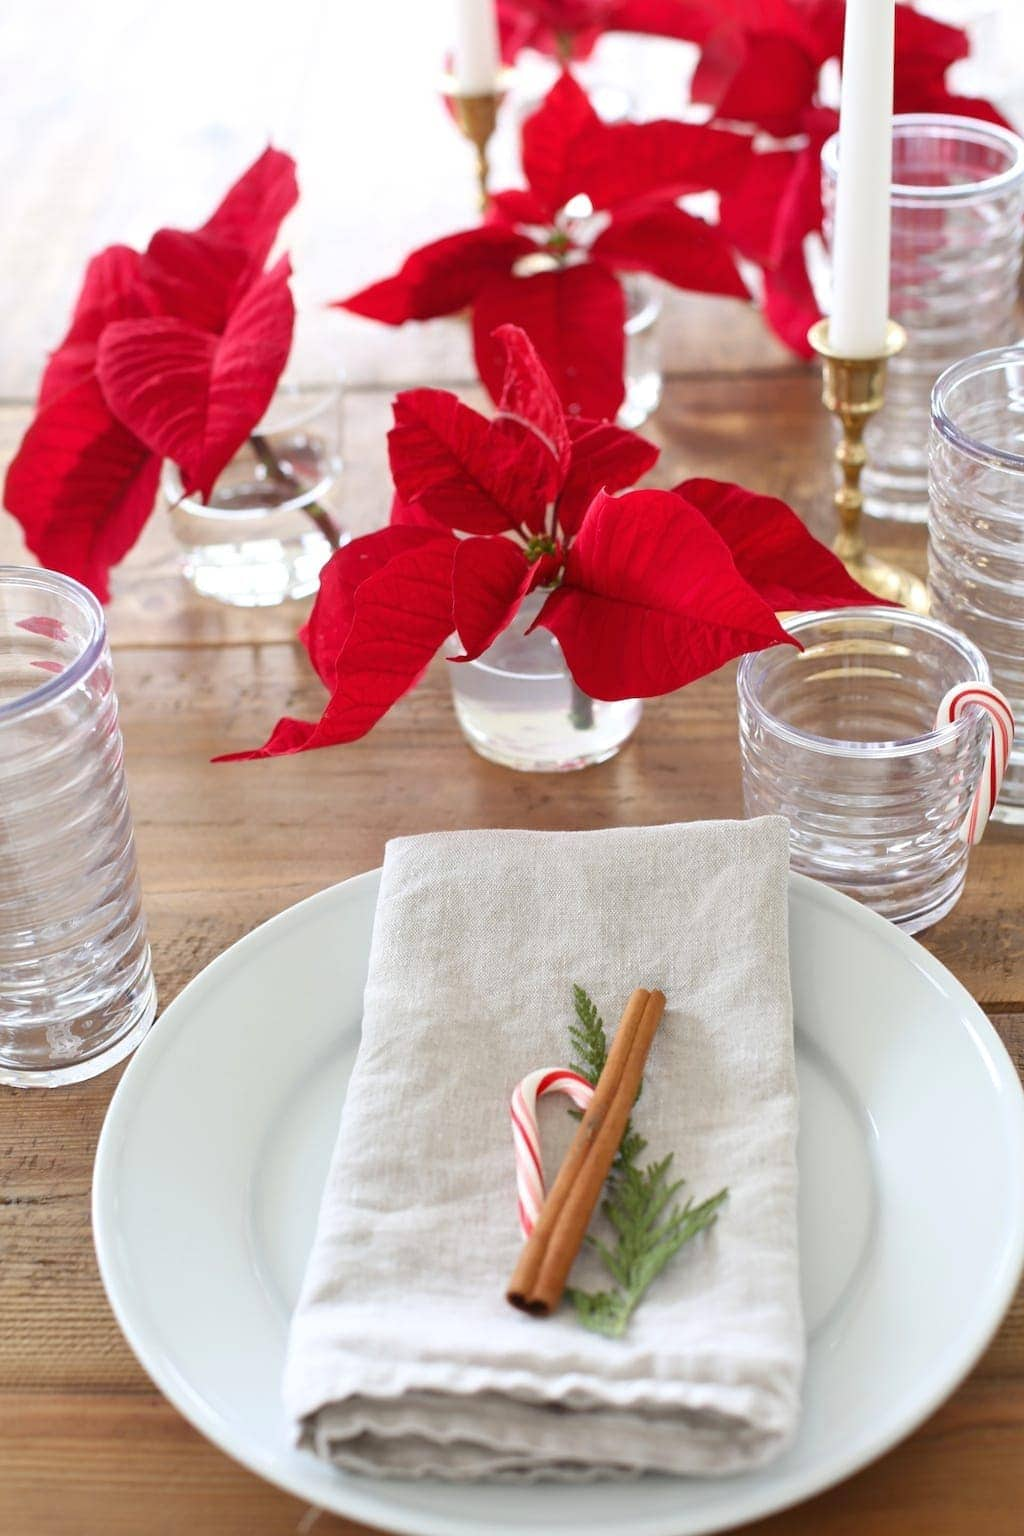 Deconstructed poinsettias - easy flower recipes from entertaining expert Julie Blanner